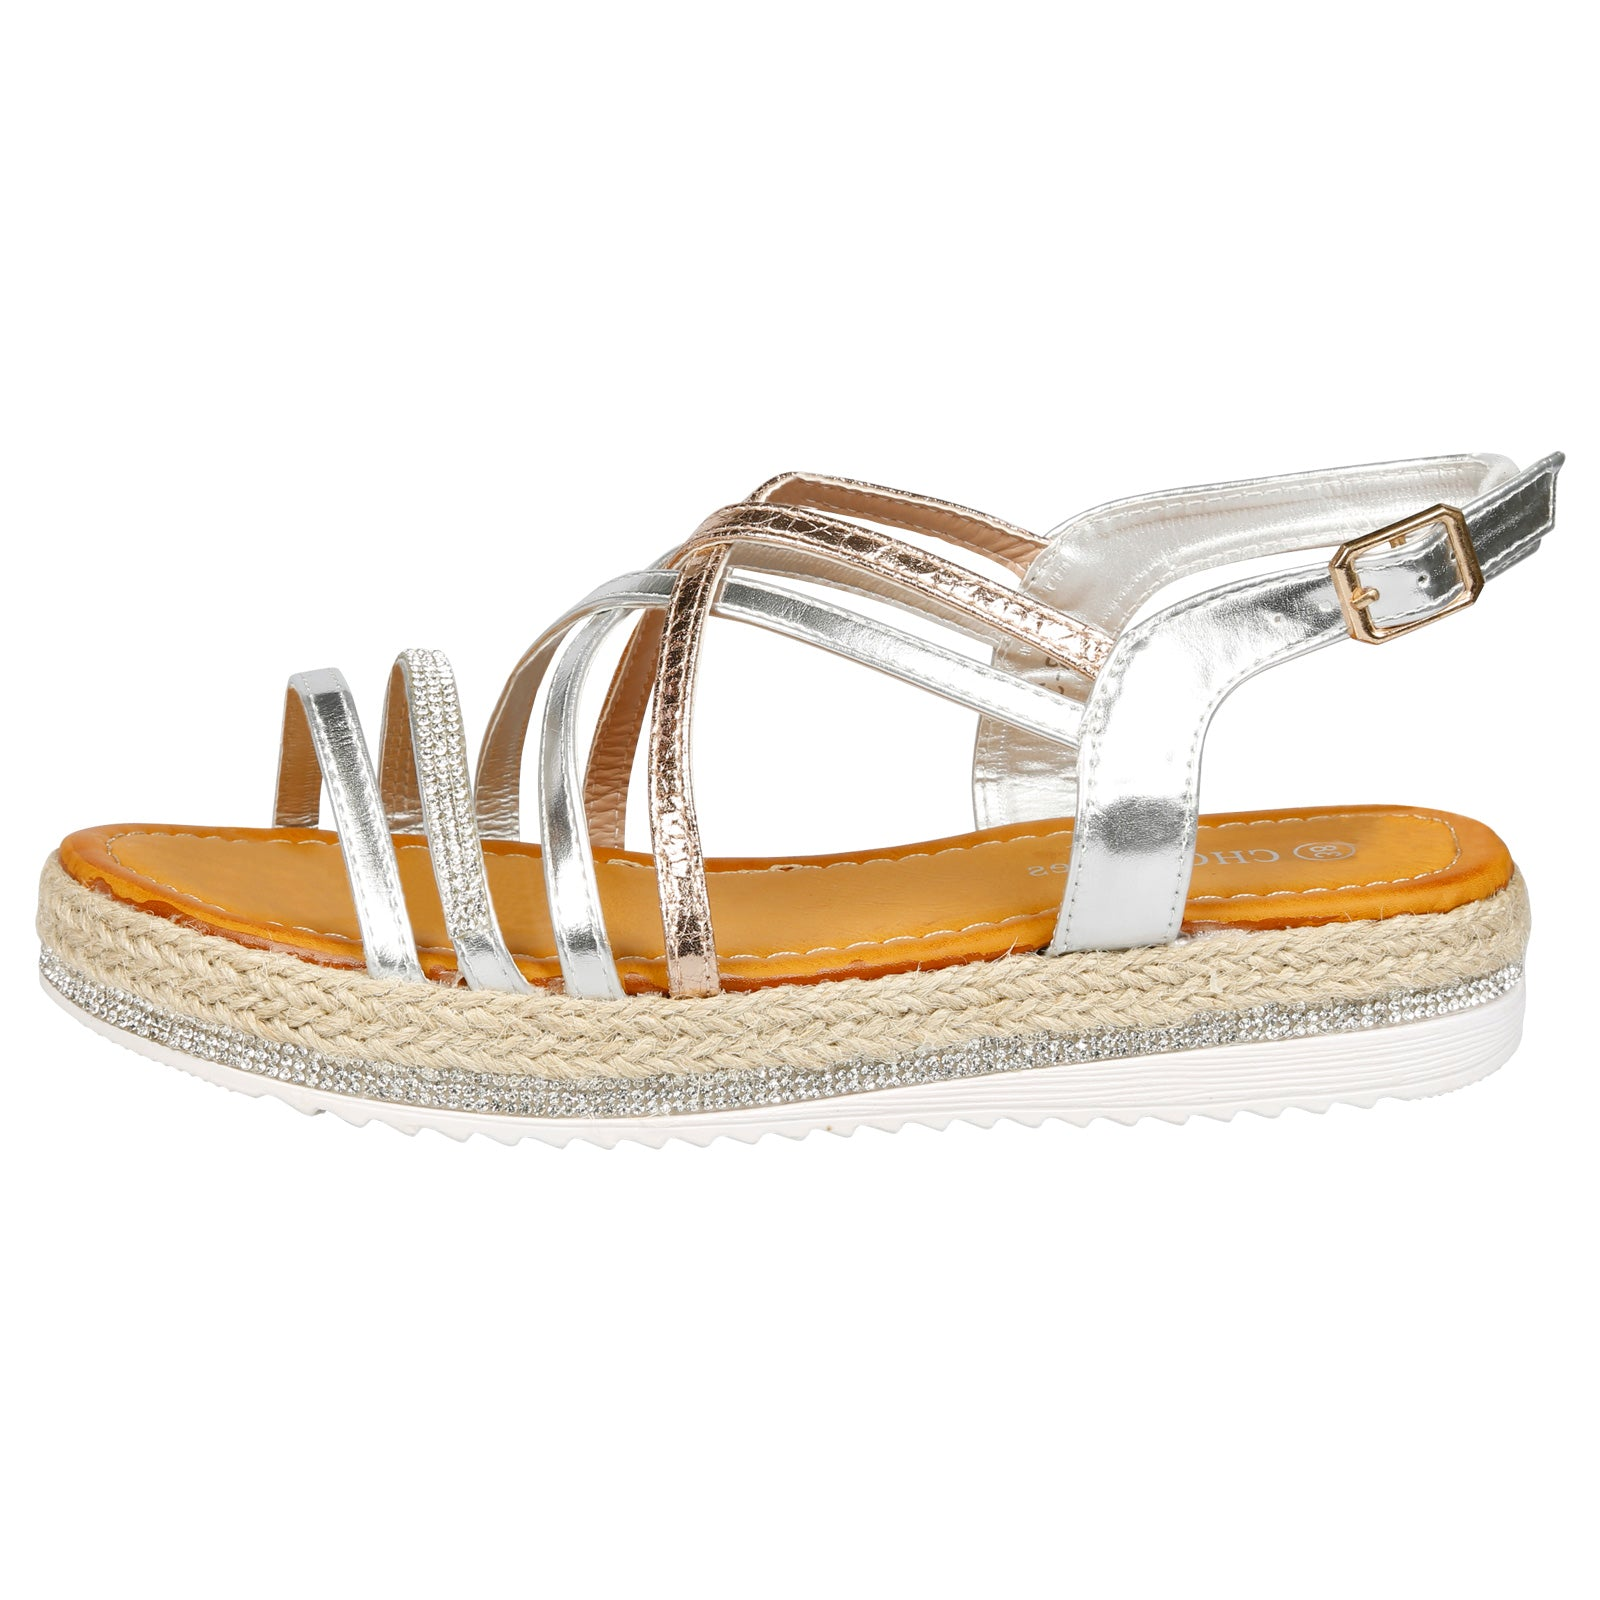 Ilana Two Tone Strappy Espadrille Sandals in Silver & Rose Gold - Feet First Fashion